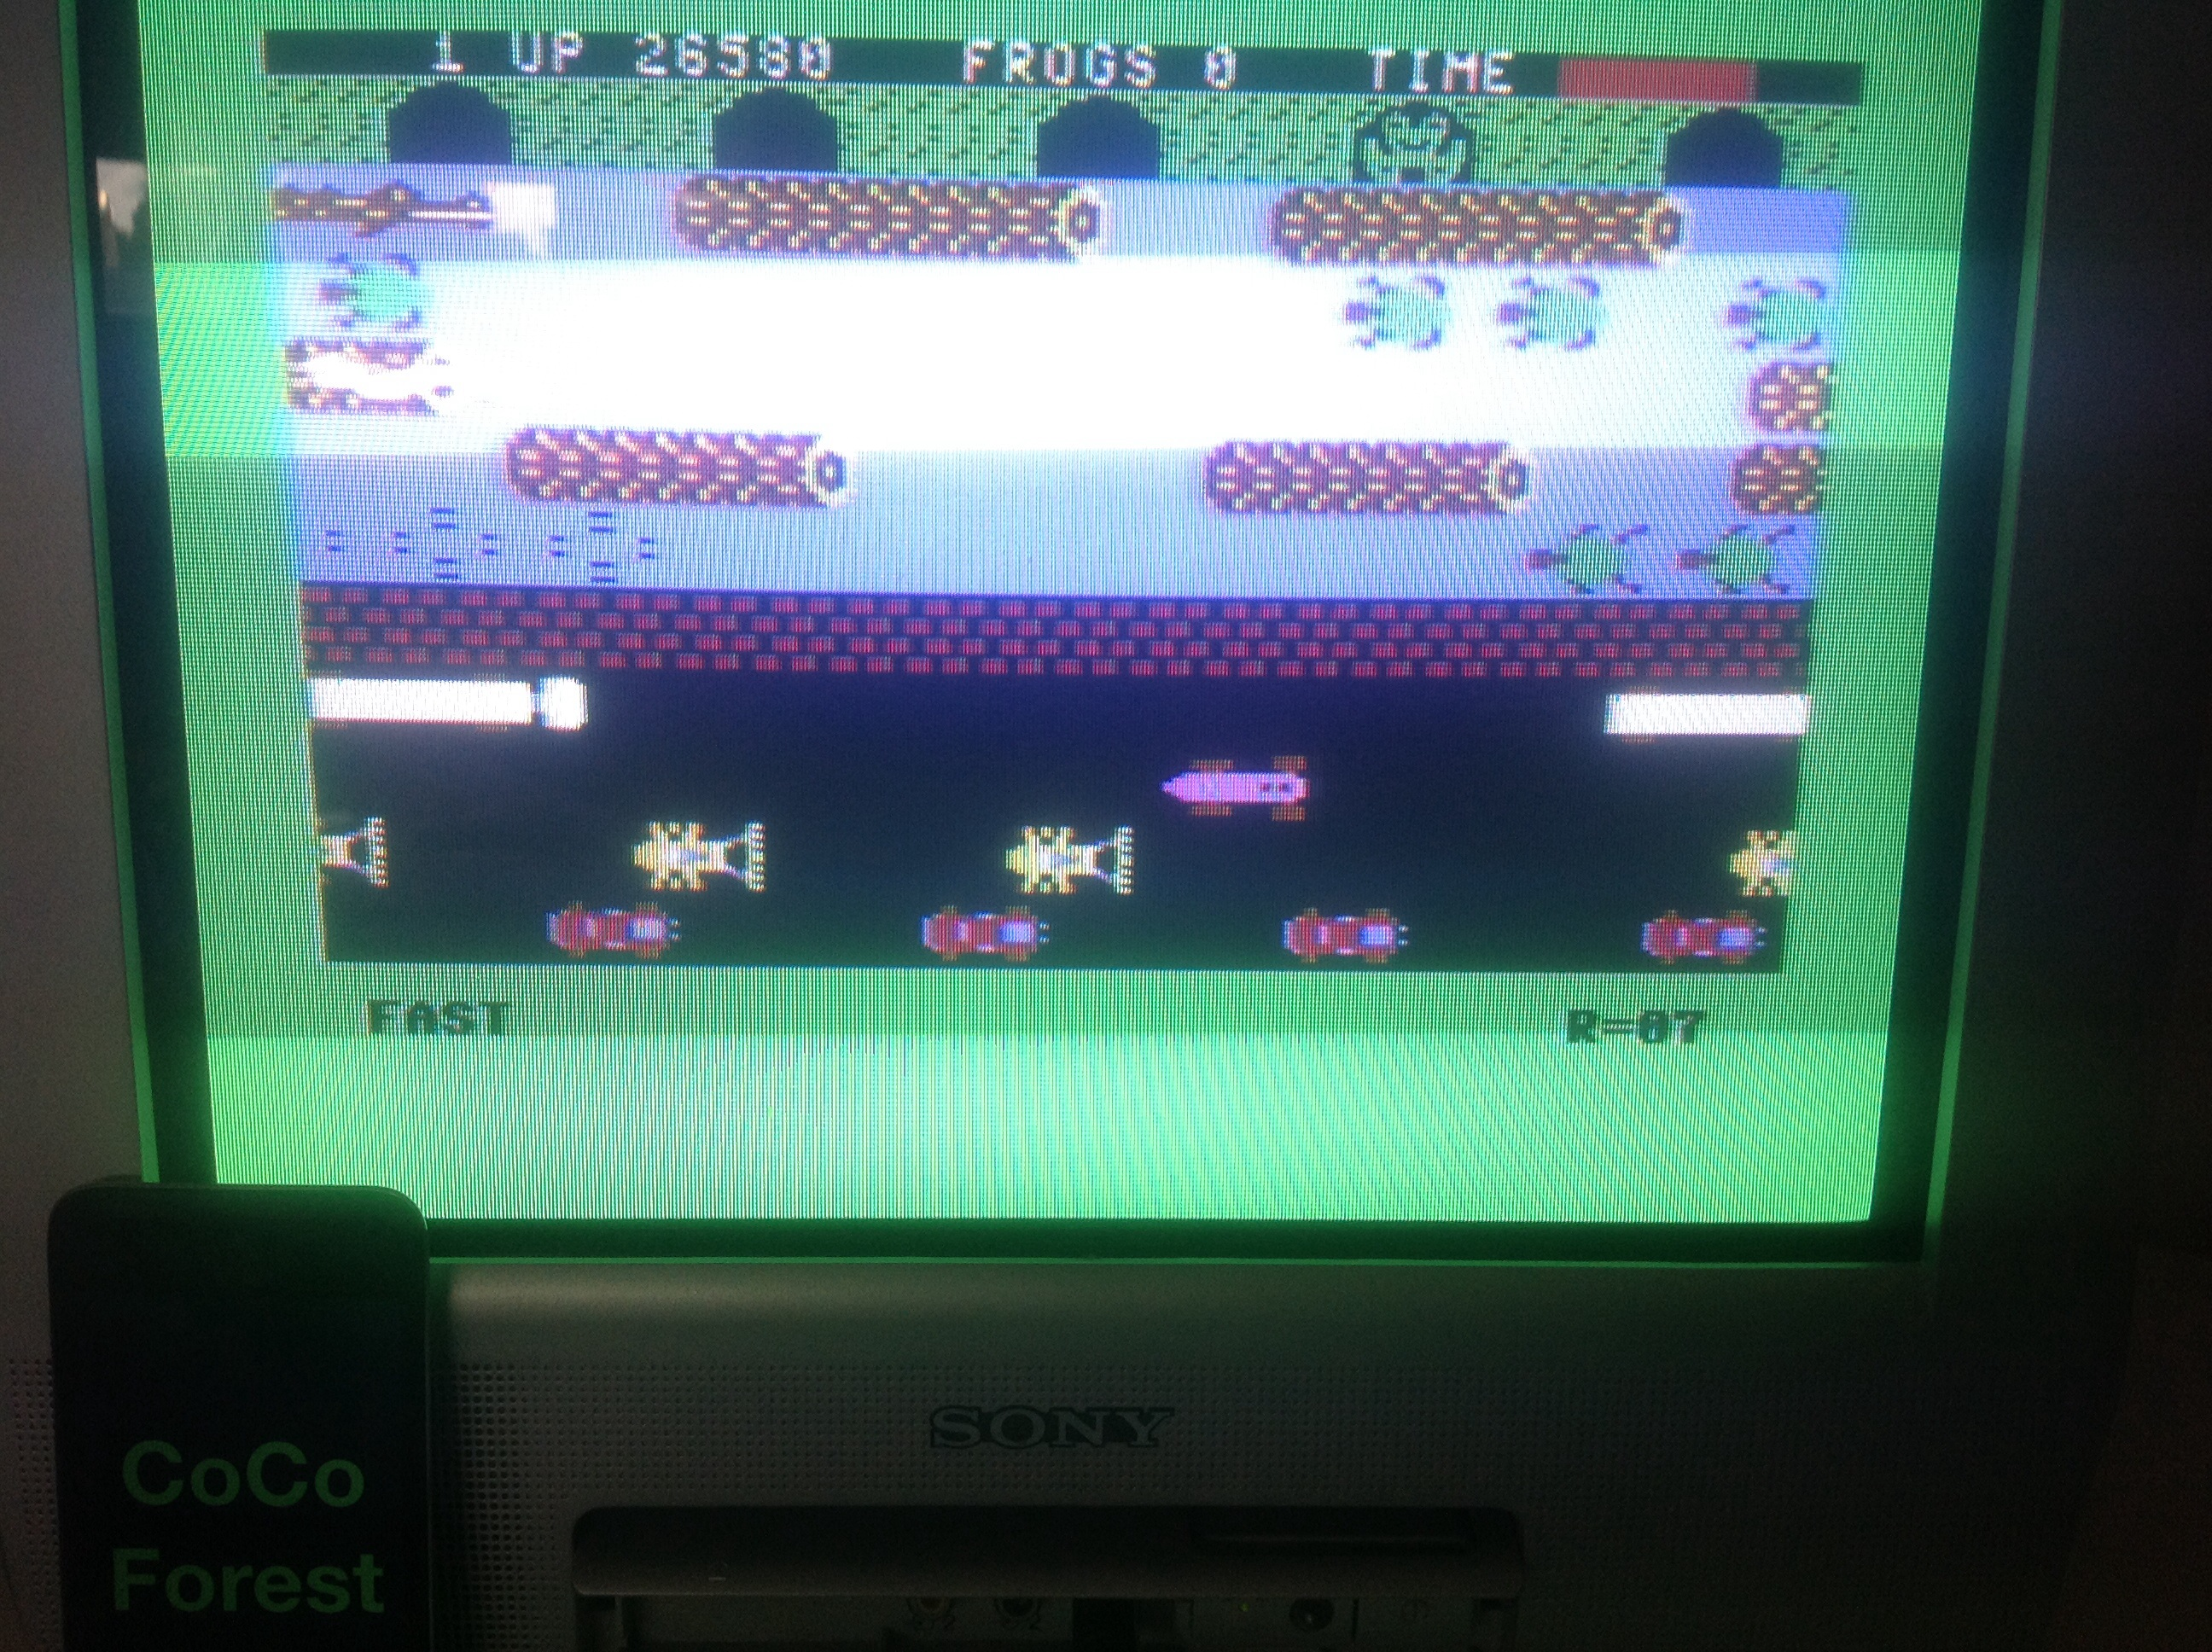 CoCoForest: Frogger: Parker Bros [Fast] (Commodore 64) 26,580 points on 2014-08-15 08:25:09